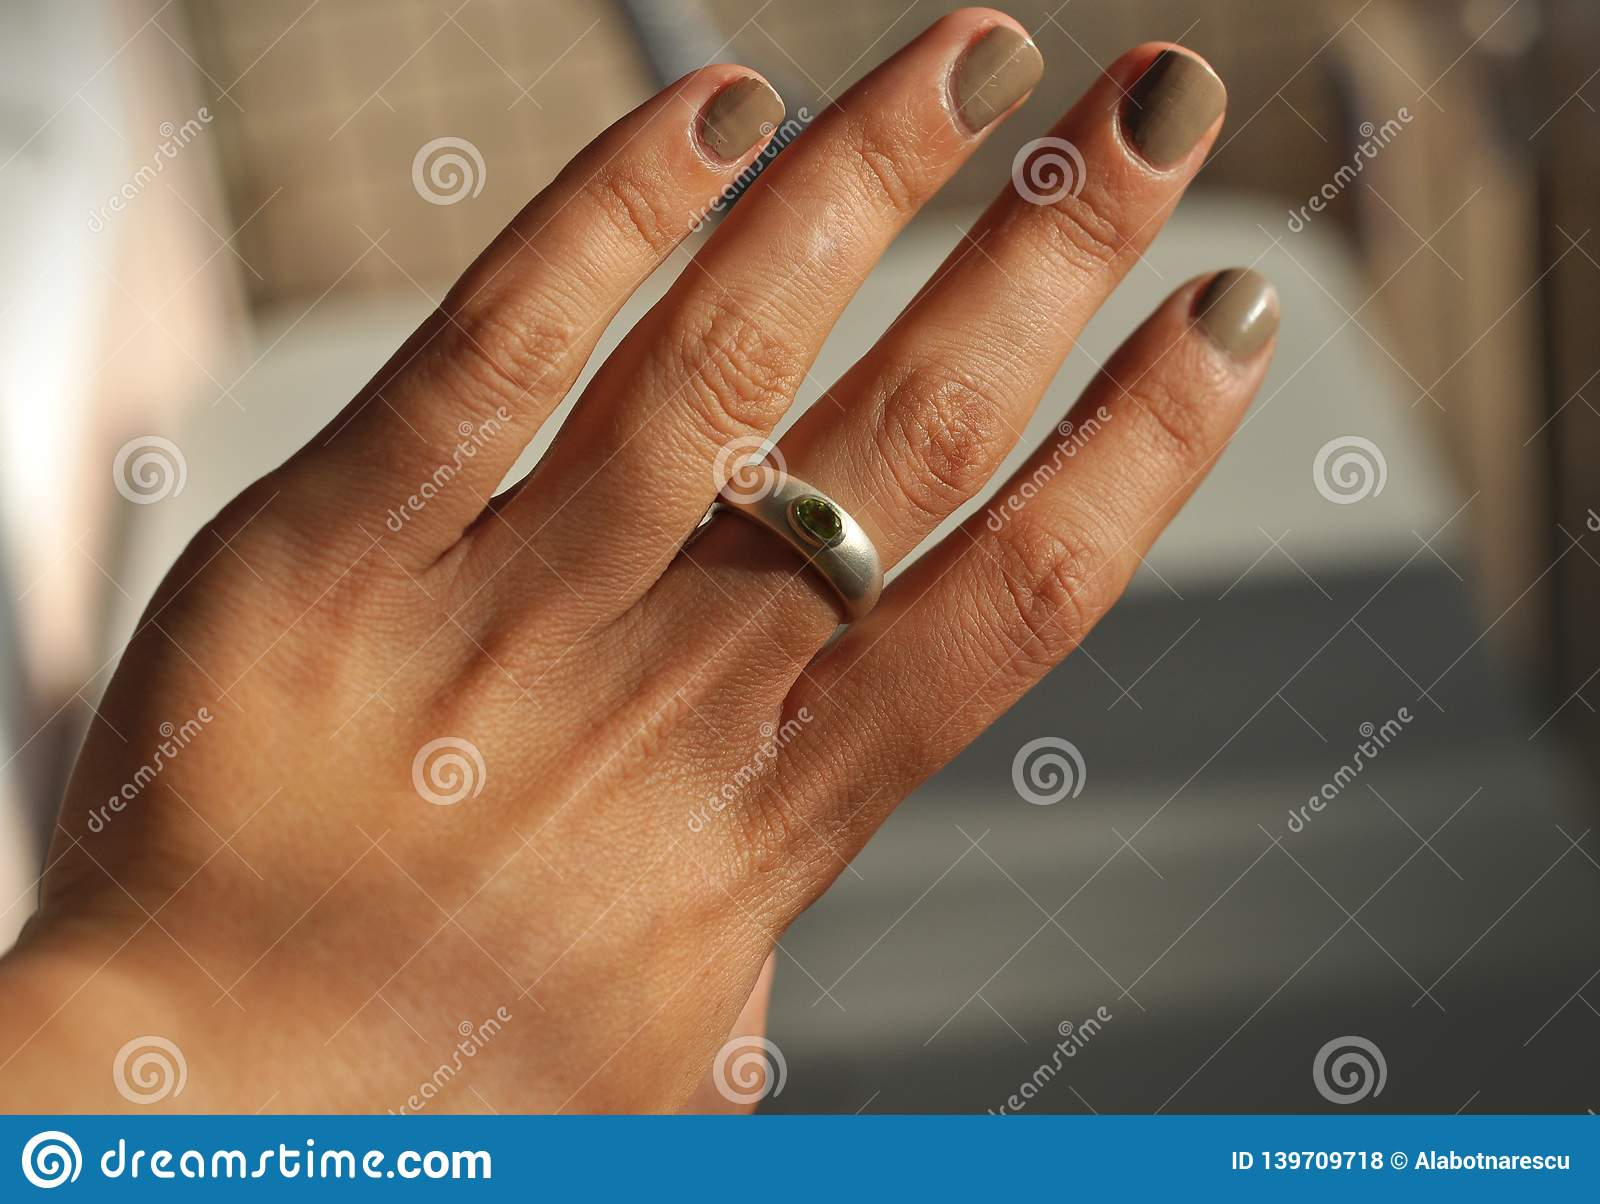 A beautiful female hand with ring. A silver ring chrysolite rock, sign of energy